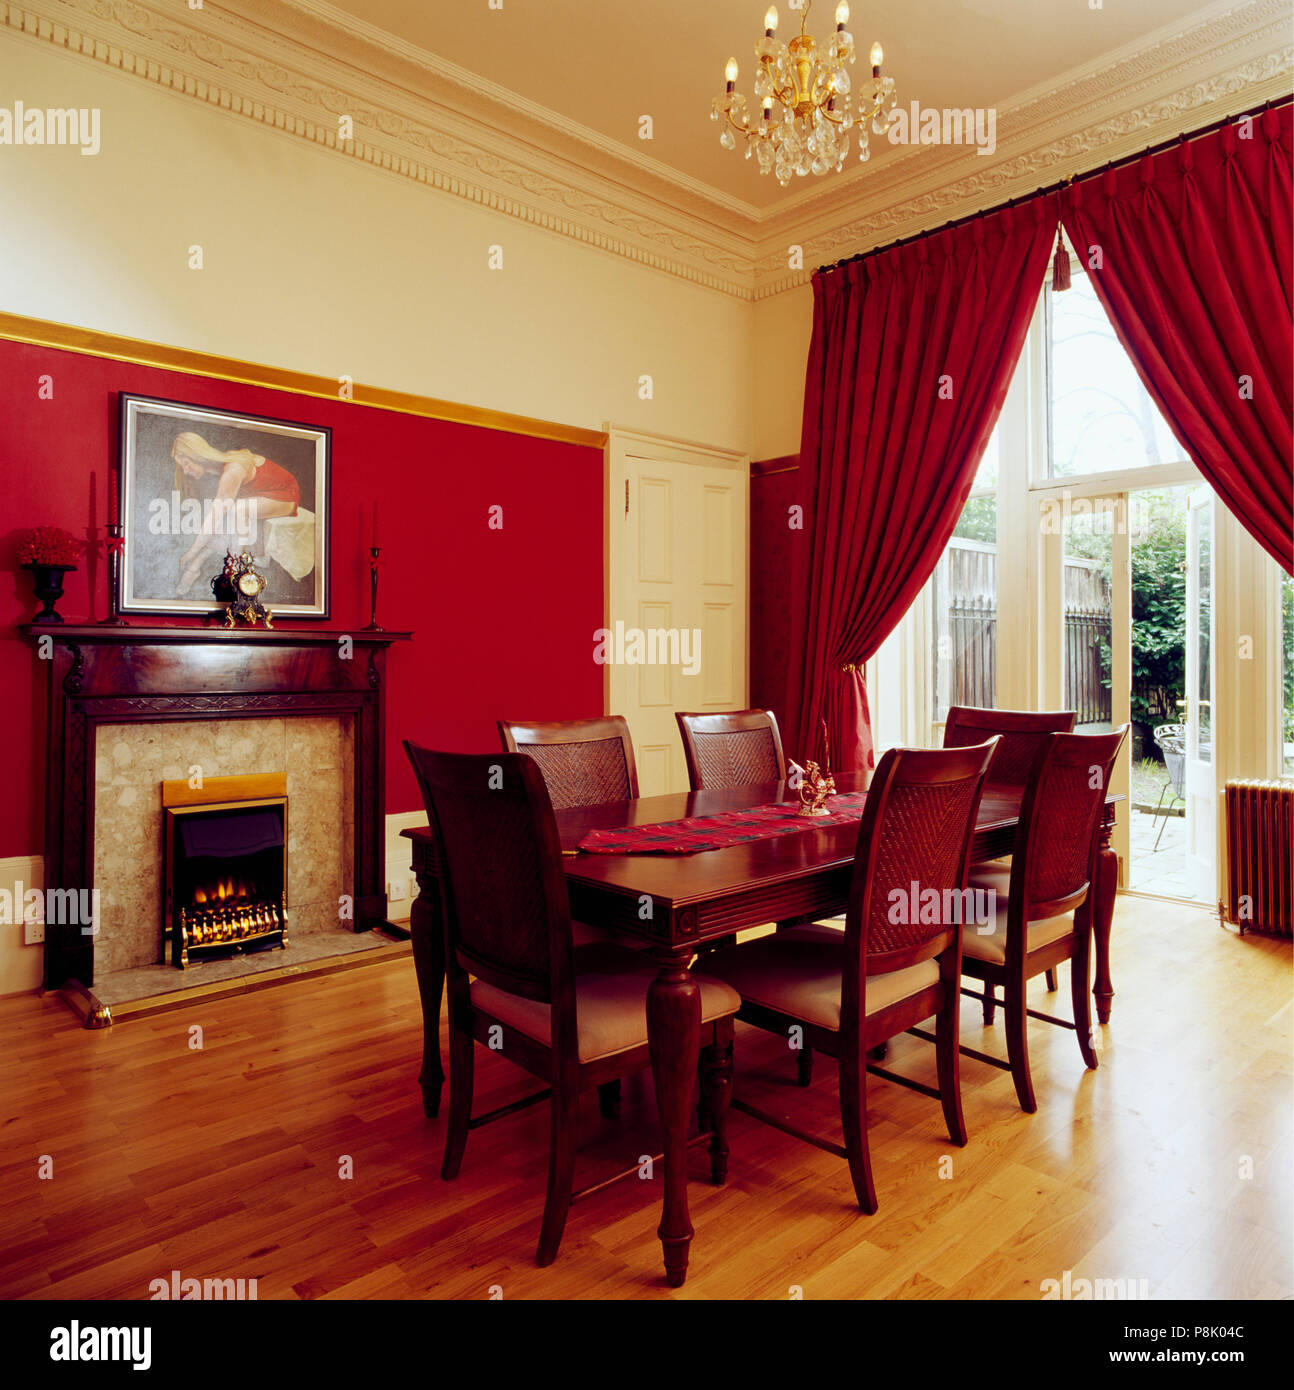 Red curtains and wooden flooring in dining room with ...